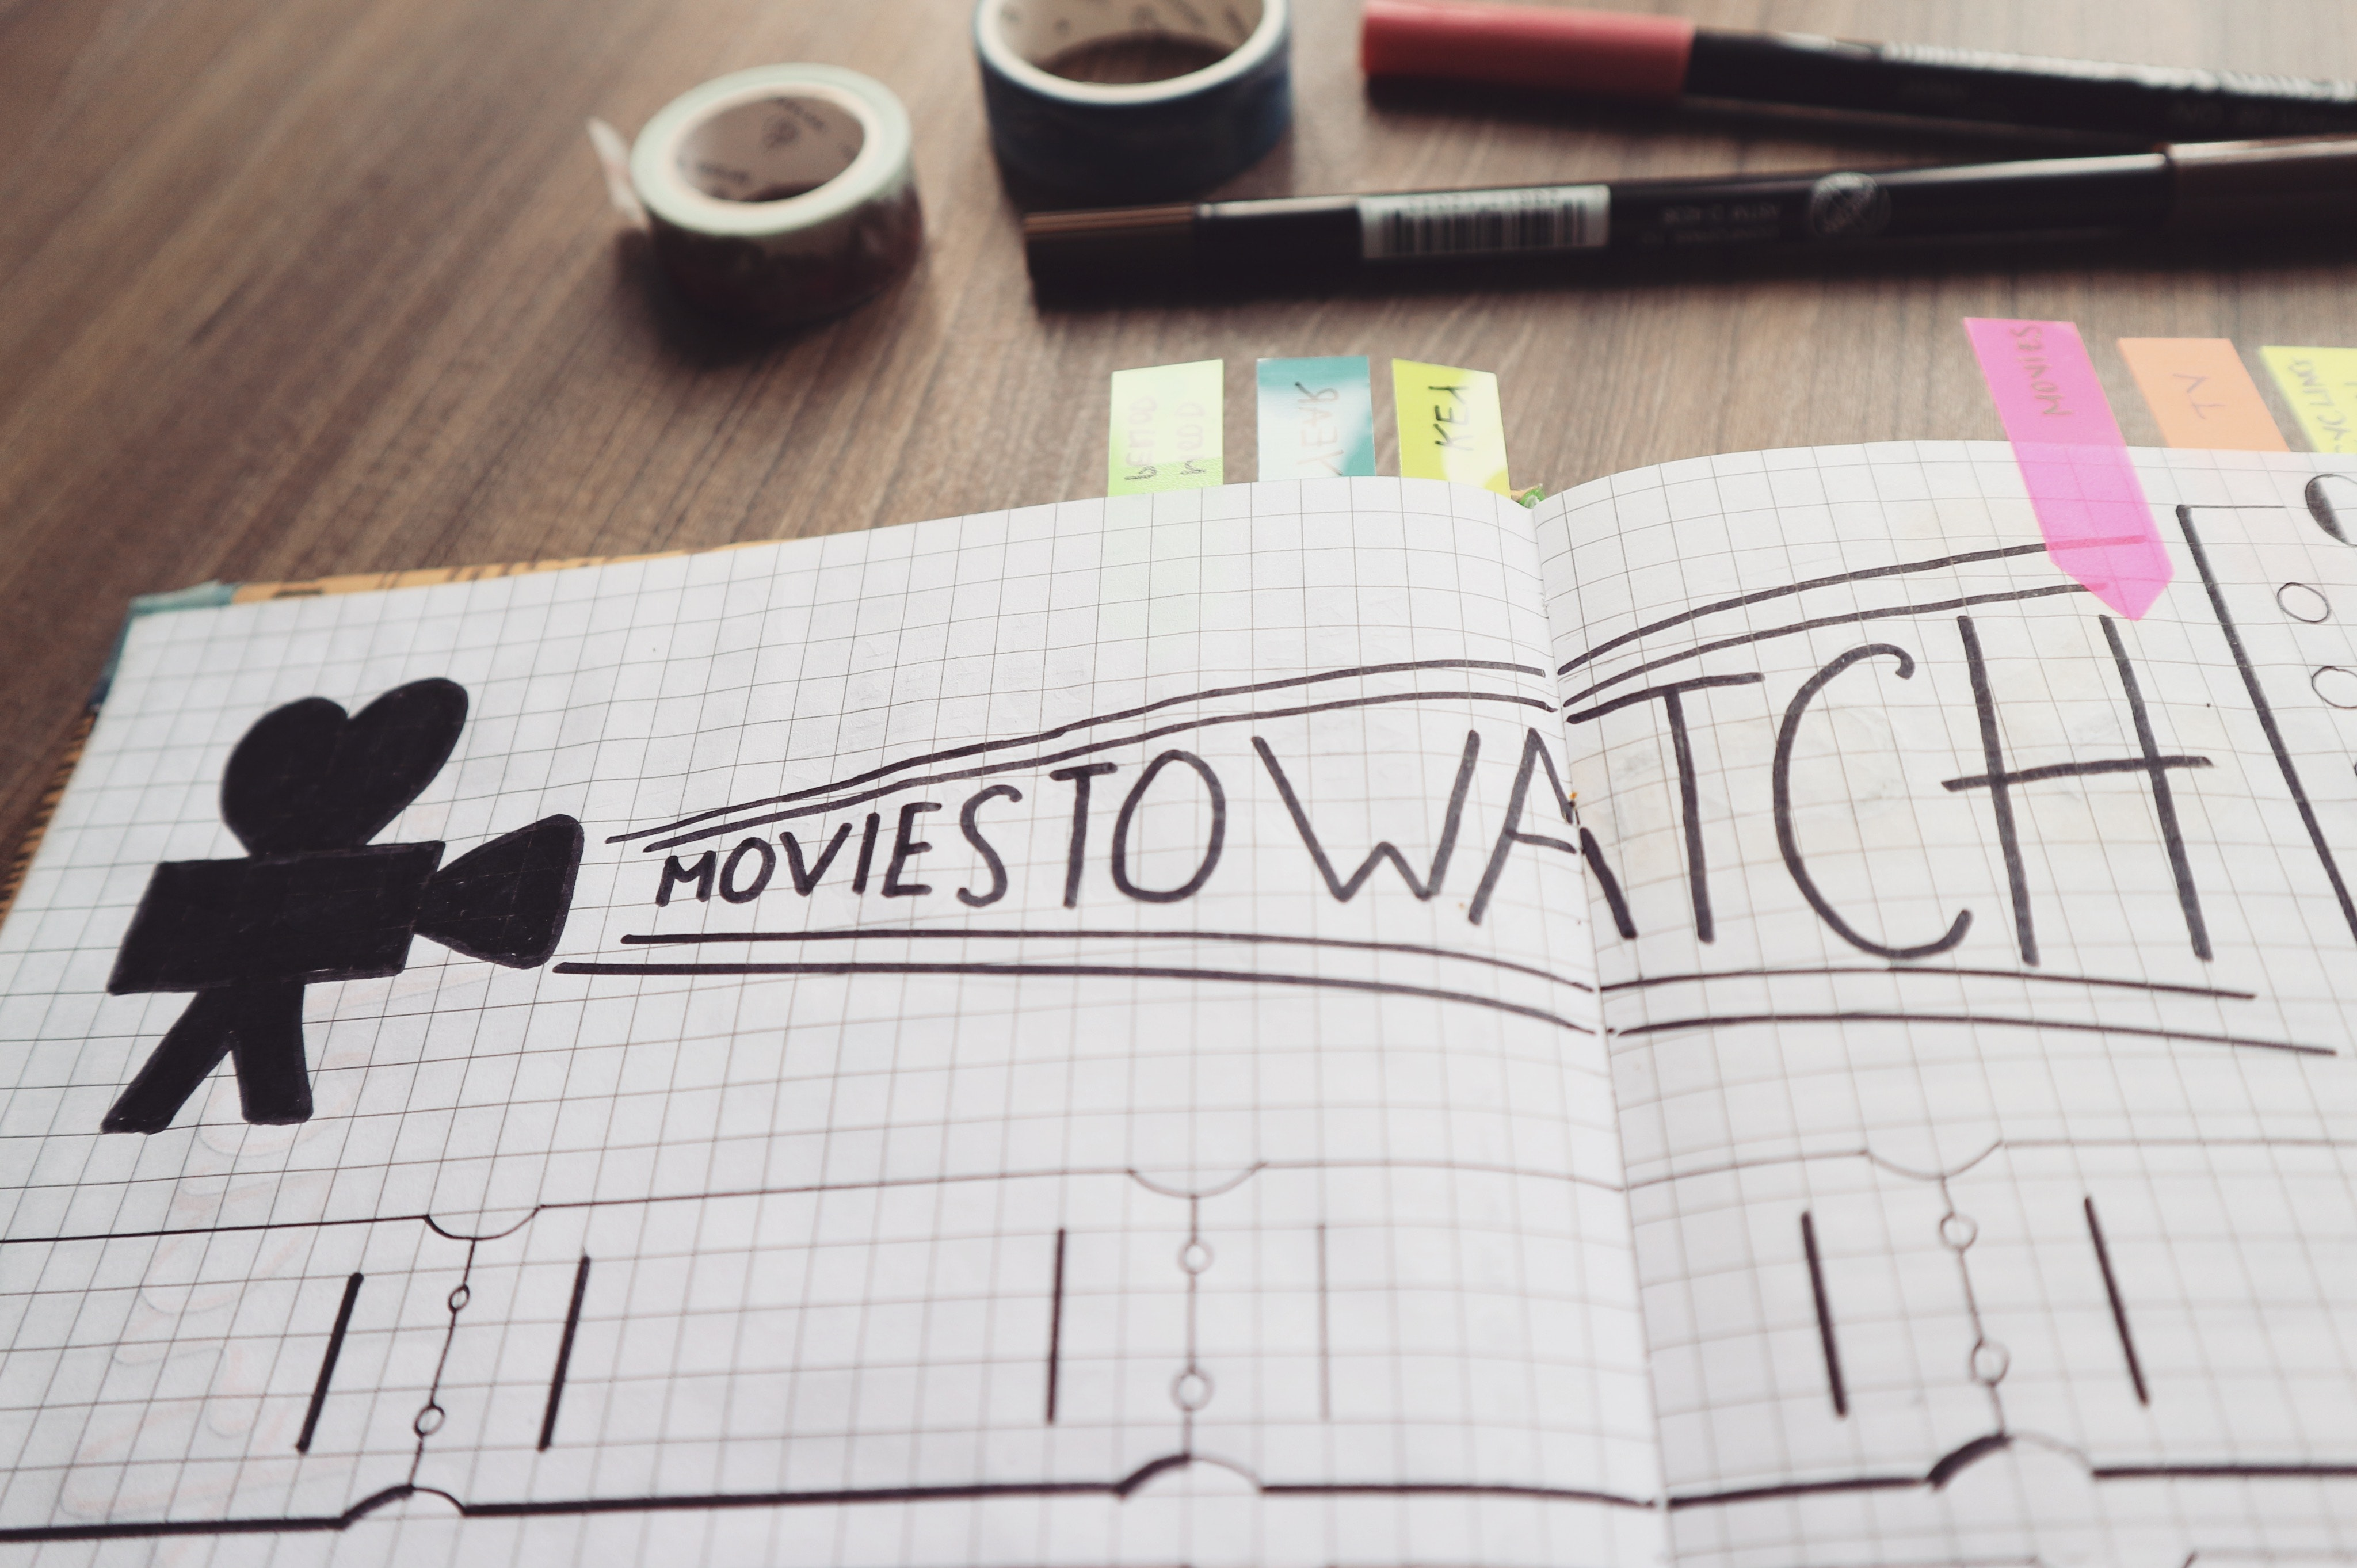 Free Stock Photo Of Bullet Journal Movies To Watch Pen